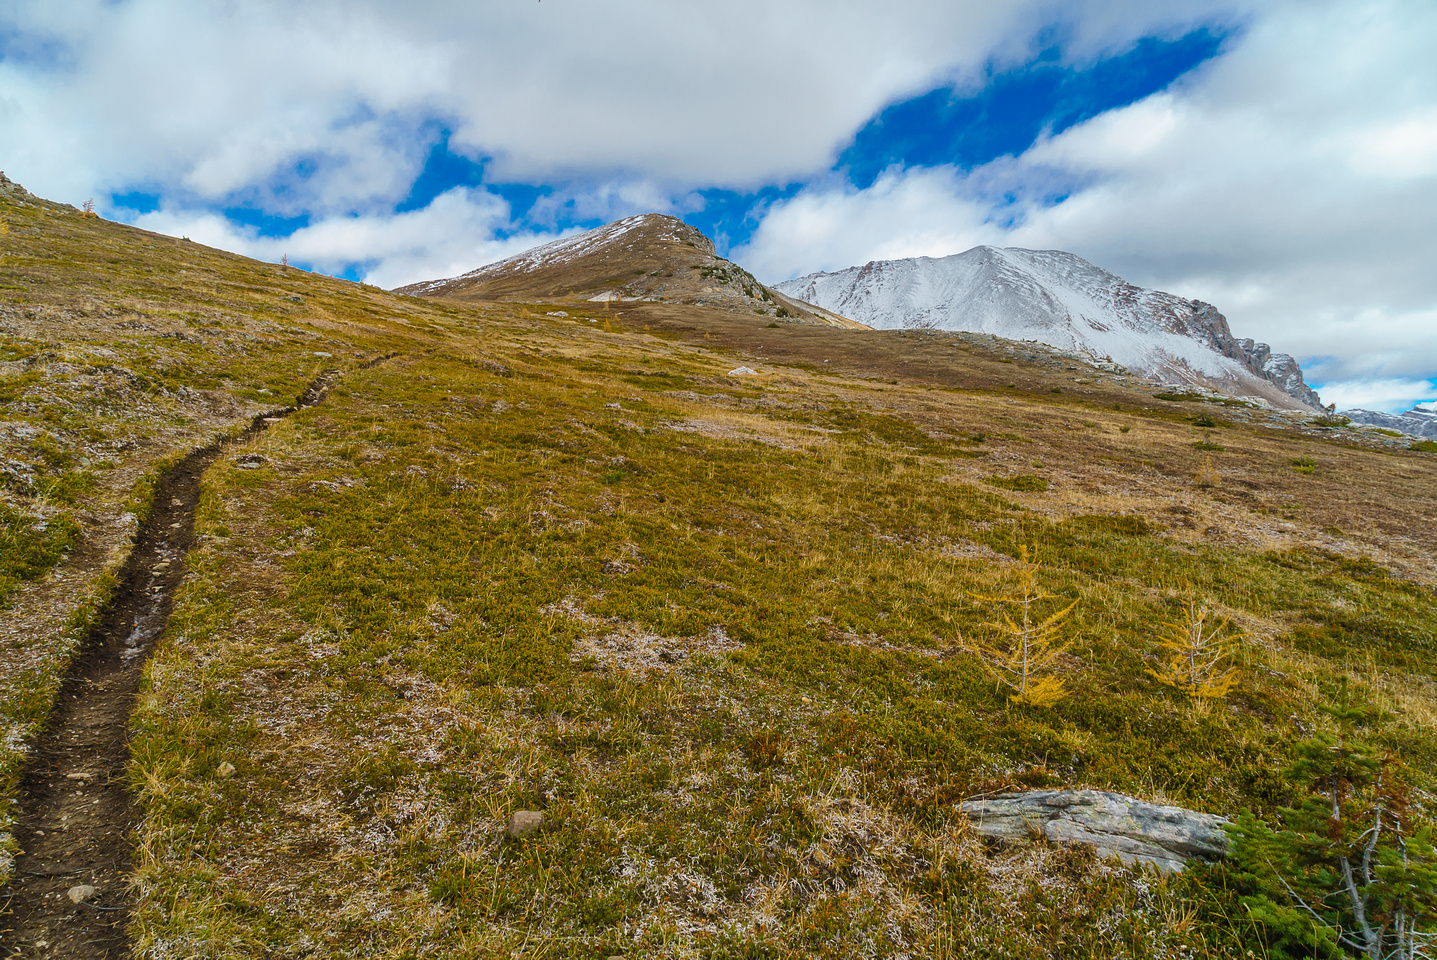 Looking back up at Packer's Pass Peak.